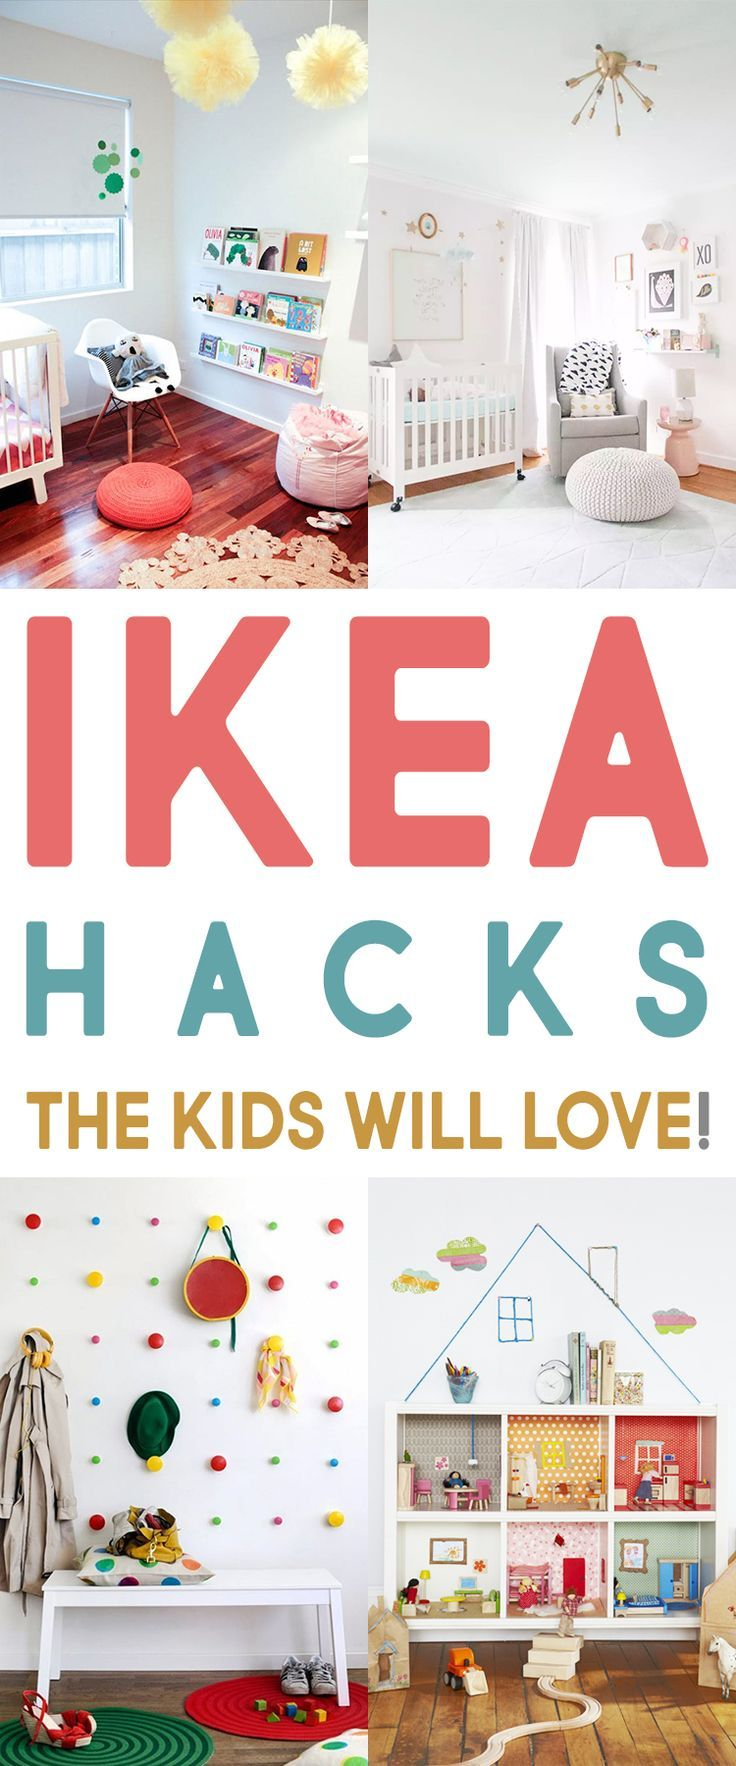 IKEA Hacks the Kids Will Love | Pinterest - Kinderkamer, Meisjes ...